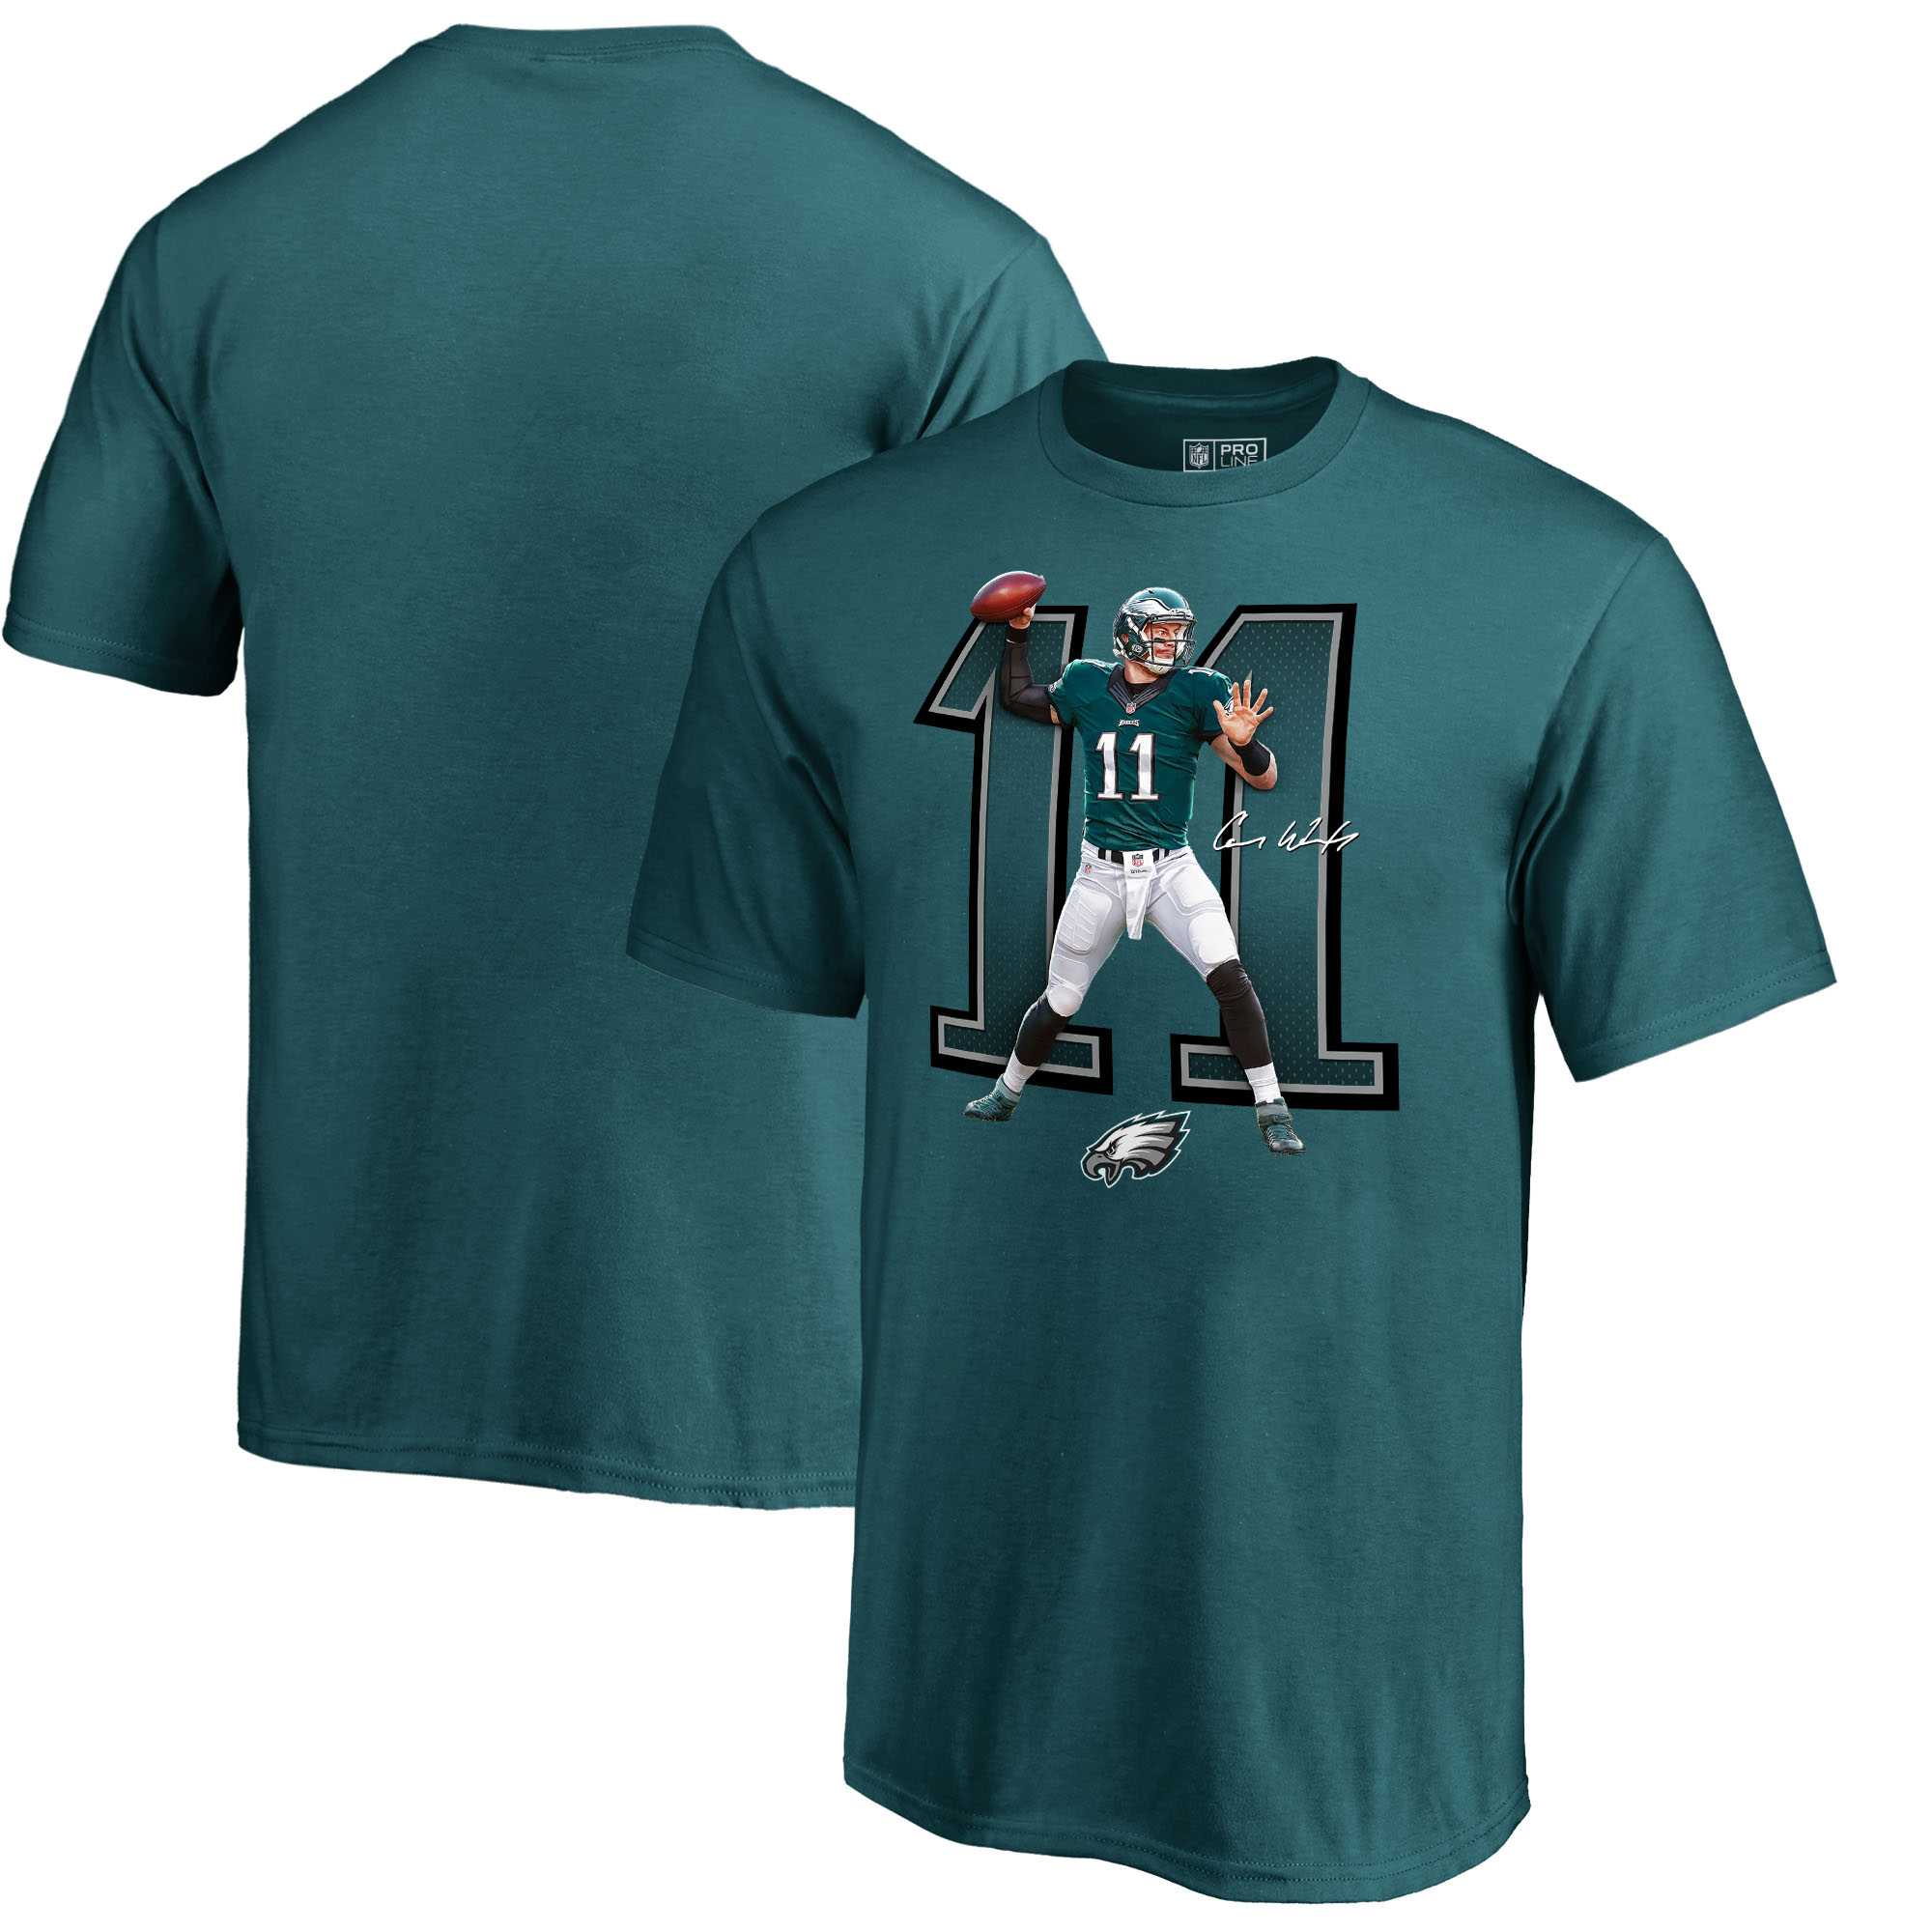 Carson Wentz Philadelphia Eagles NFL Pro Line by Fanatics Branded Power House Player Name & Number T-Shirt - Midnight Green